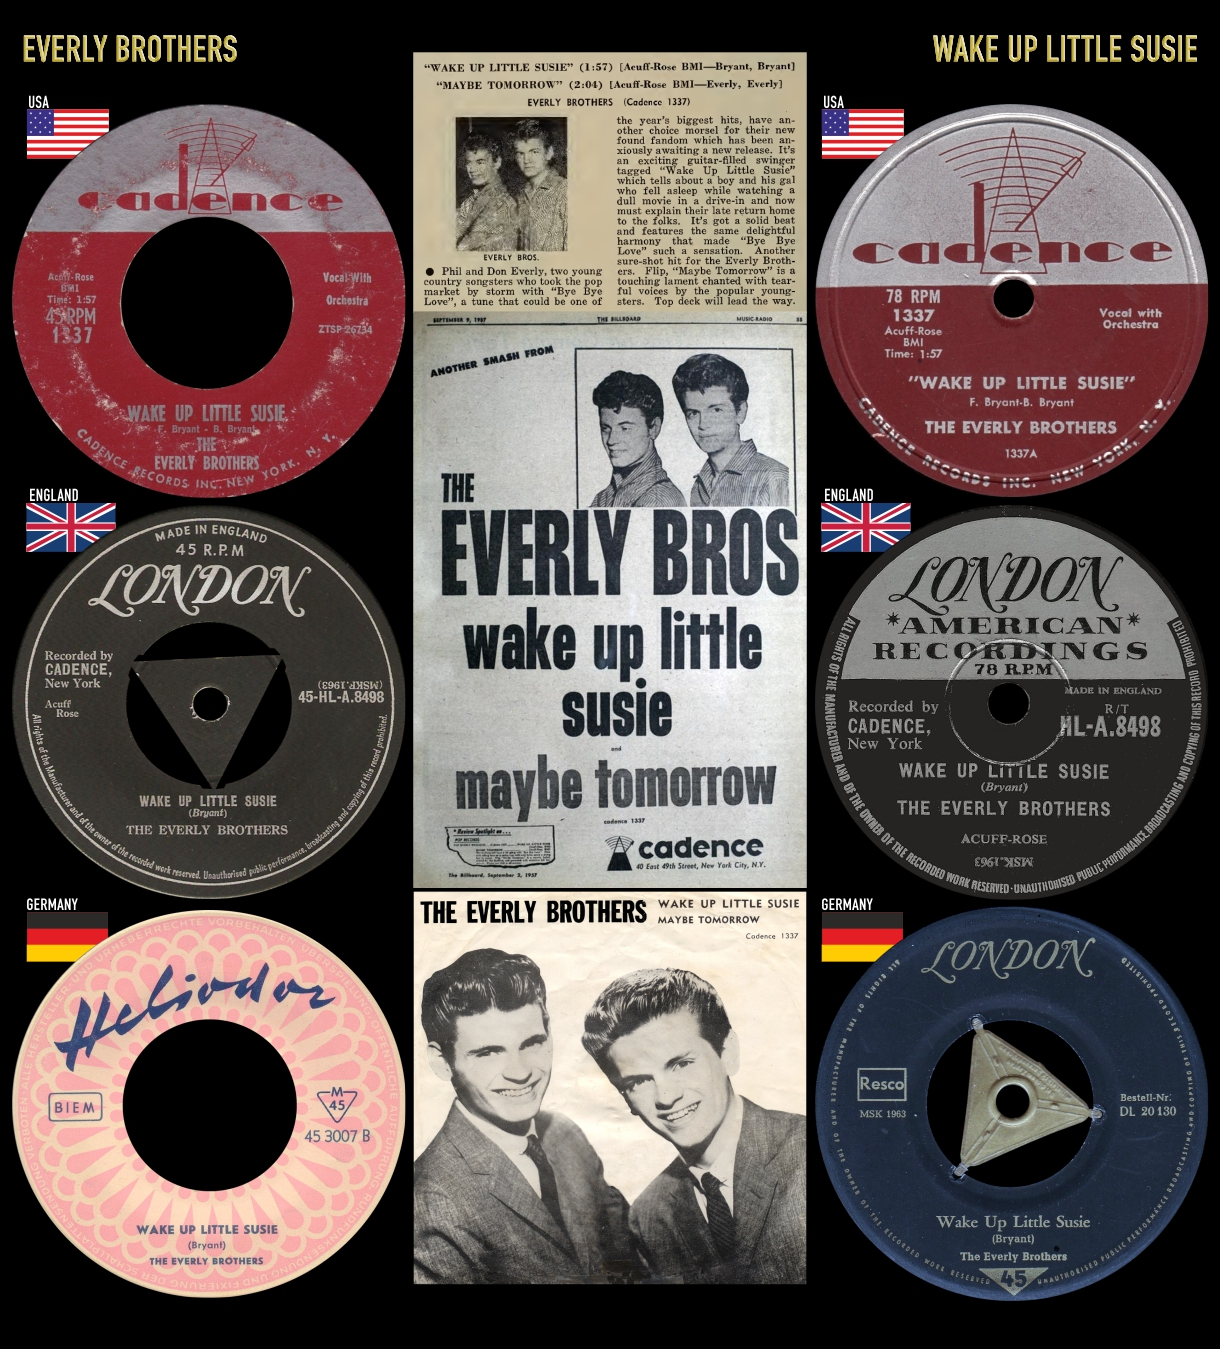 570928_Everly Brothers_Wake Up Little Susie